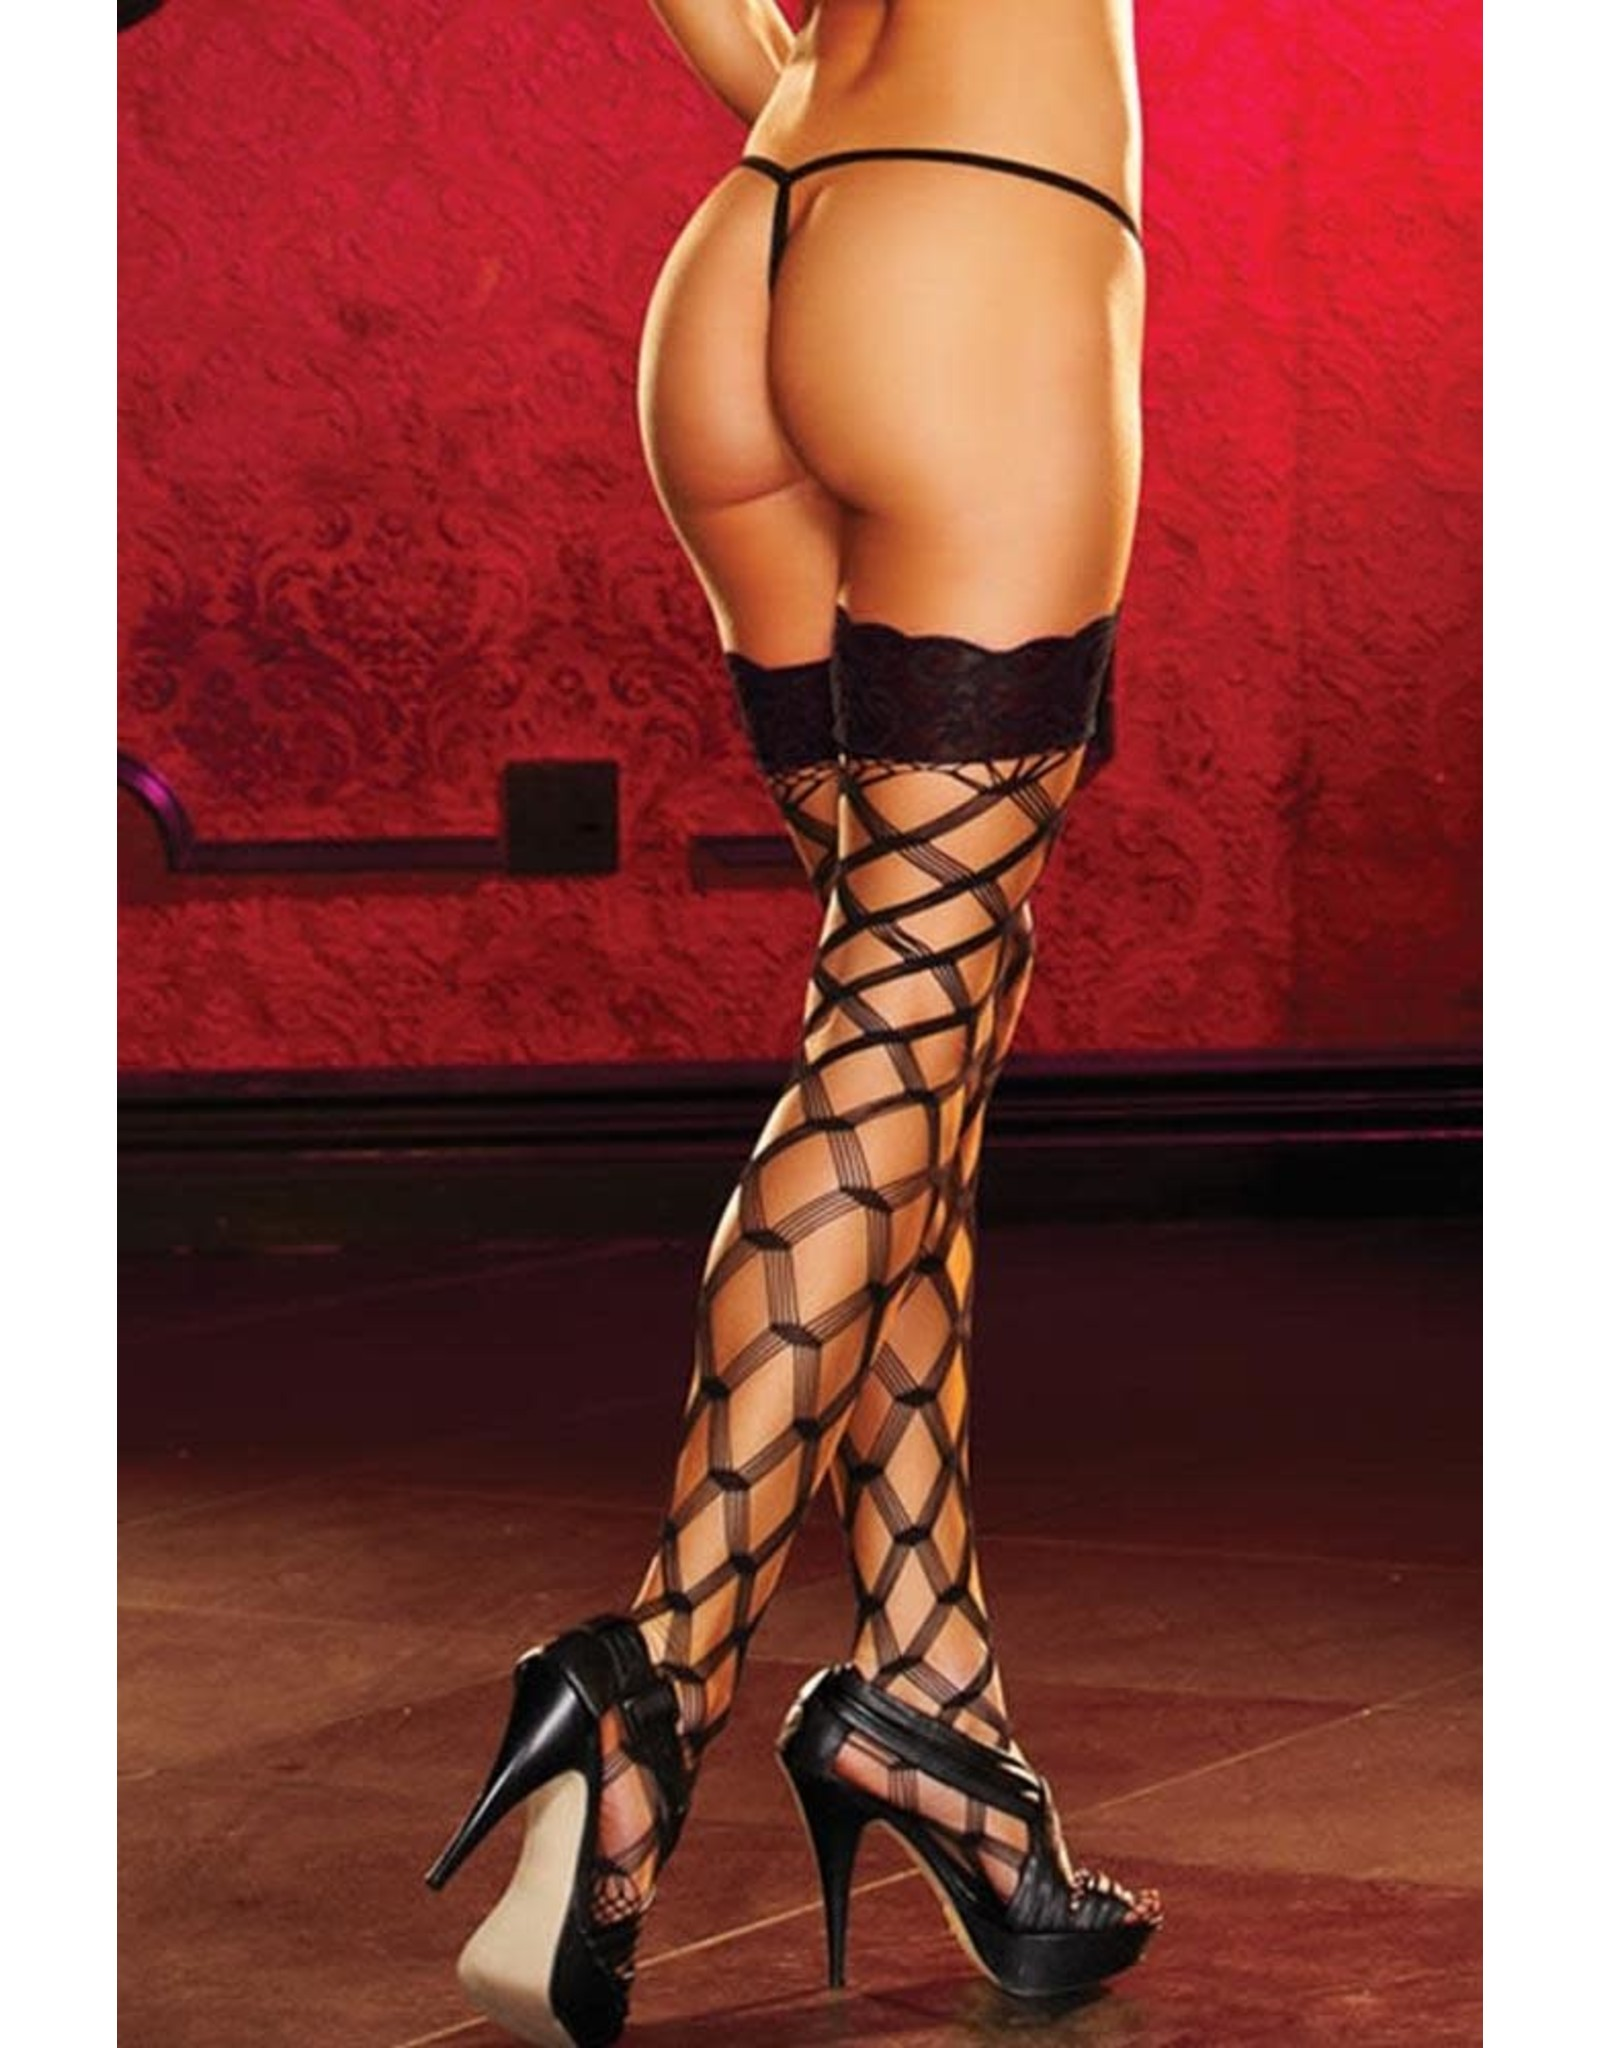 LapDance Black Diamond Net Thigh Highs With Lace Tops OS